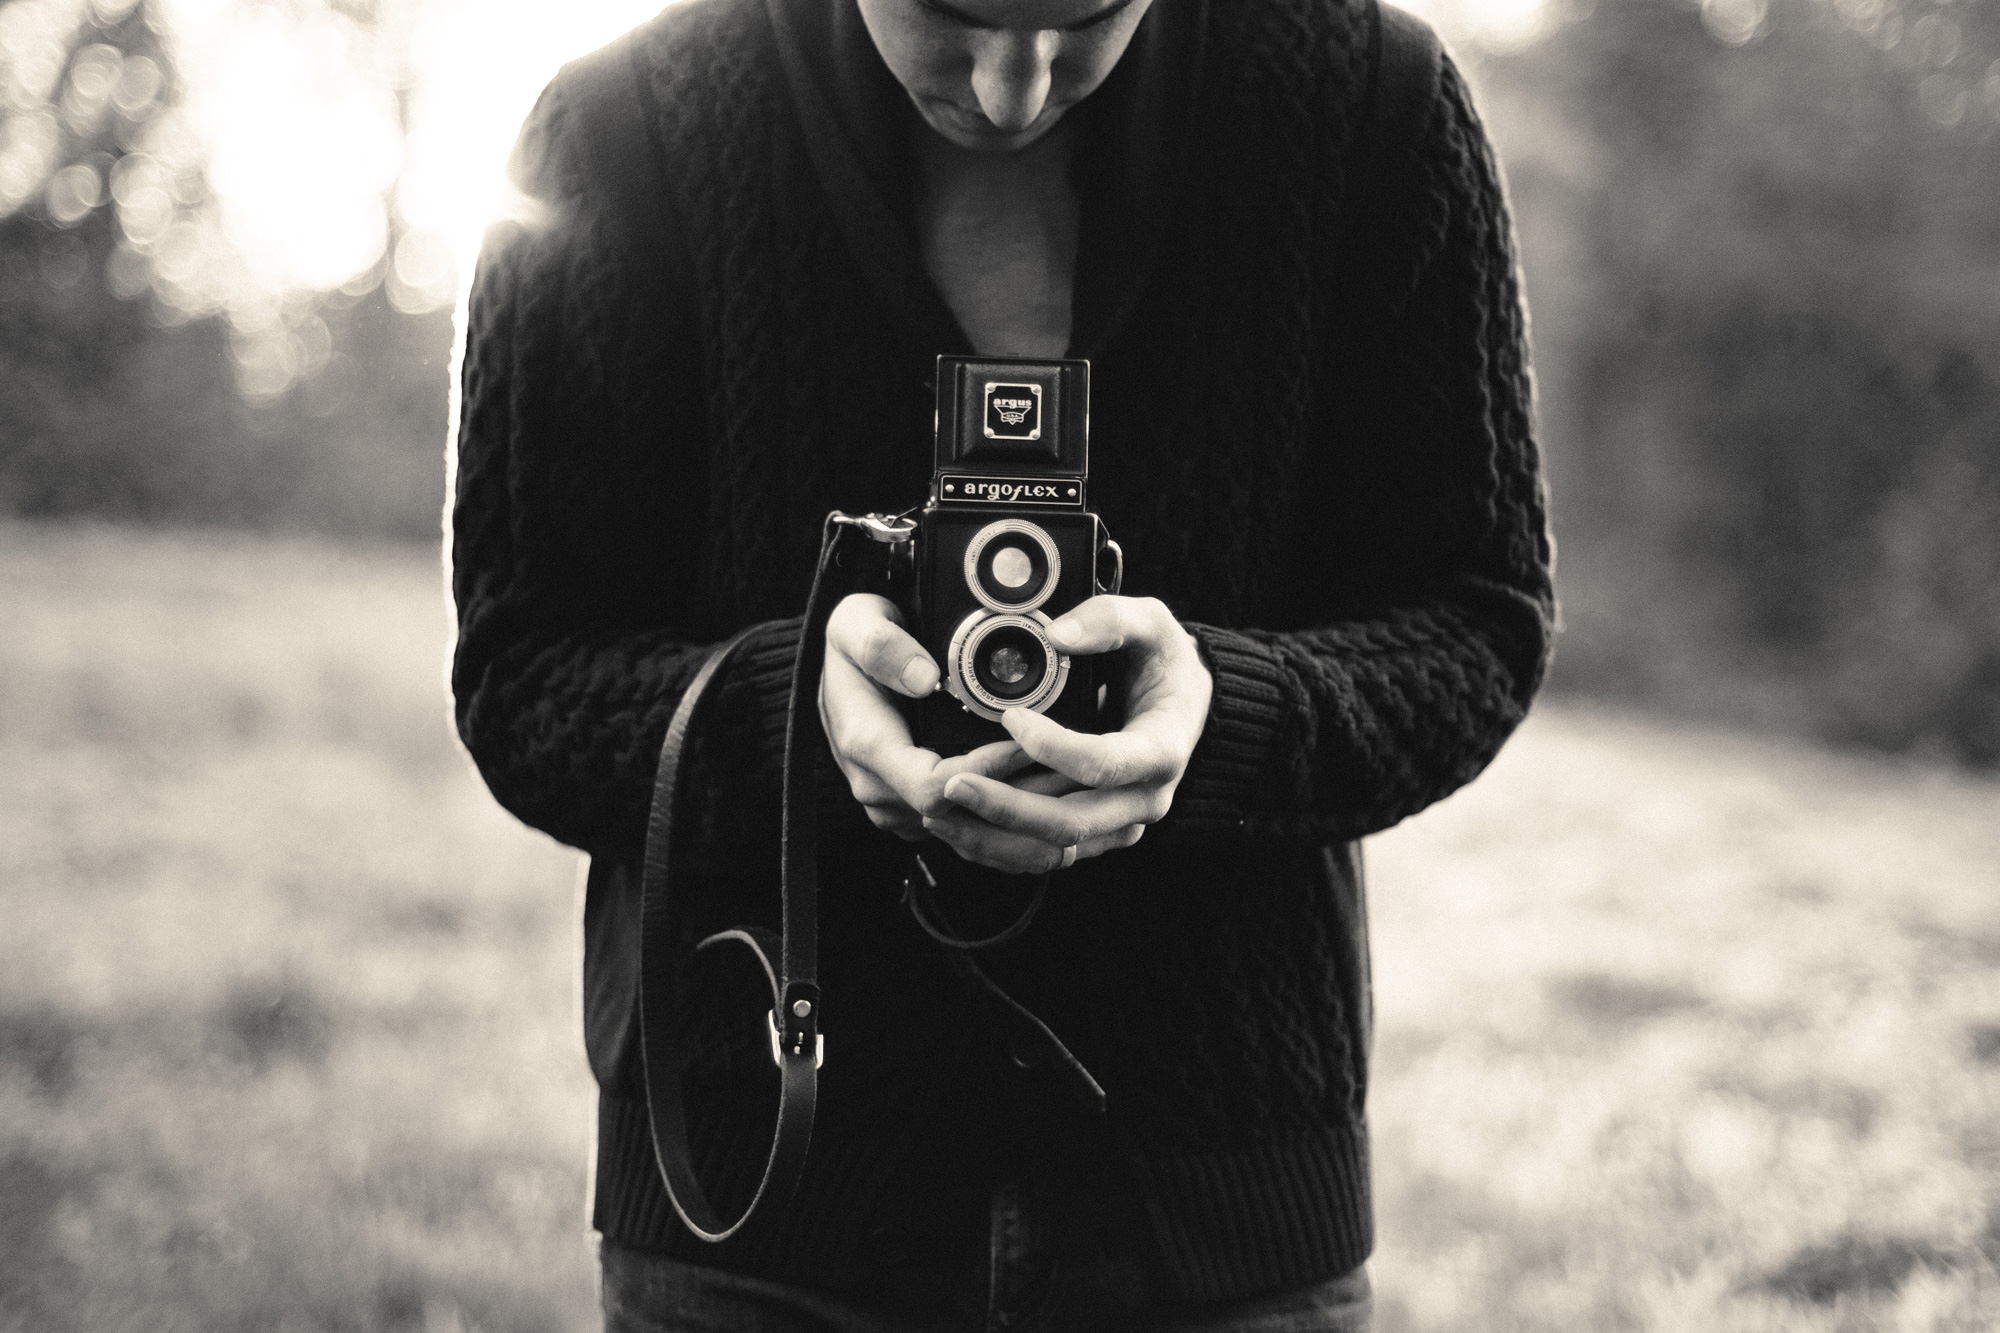 Become the photographer